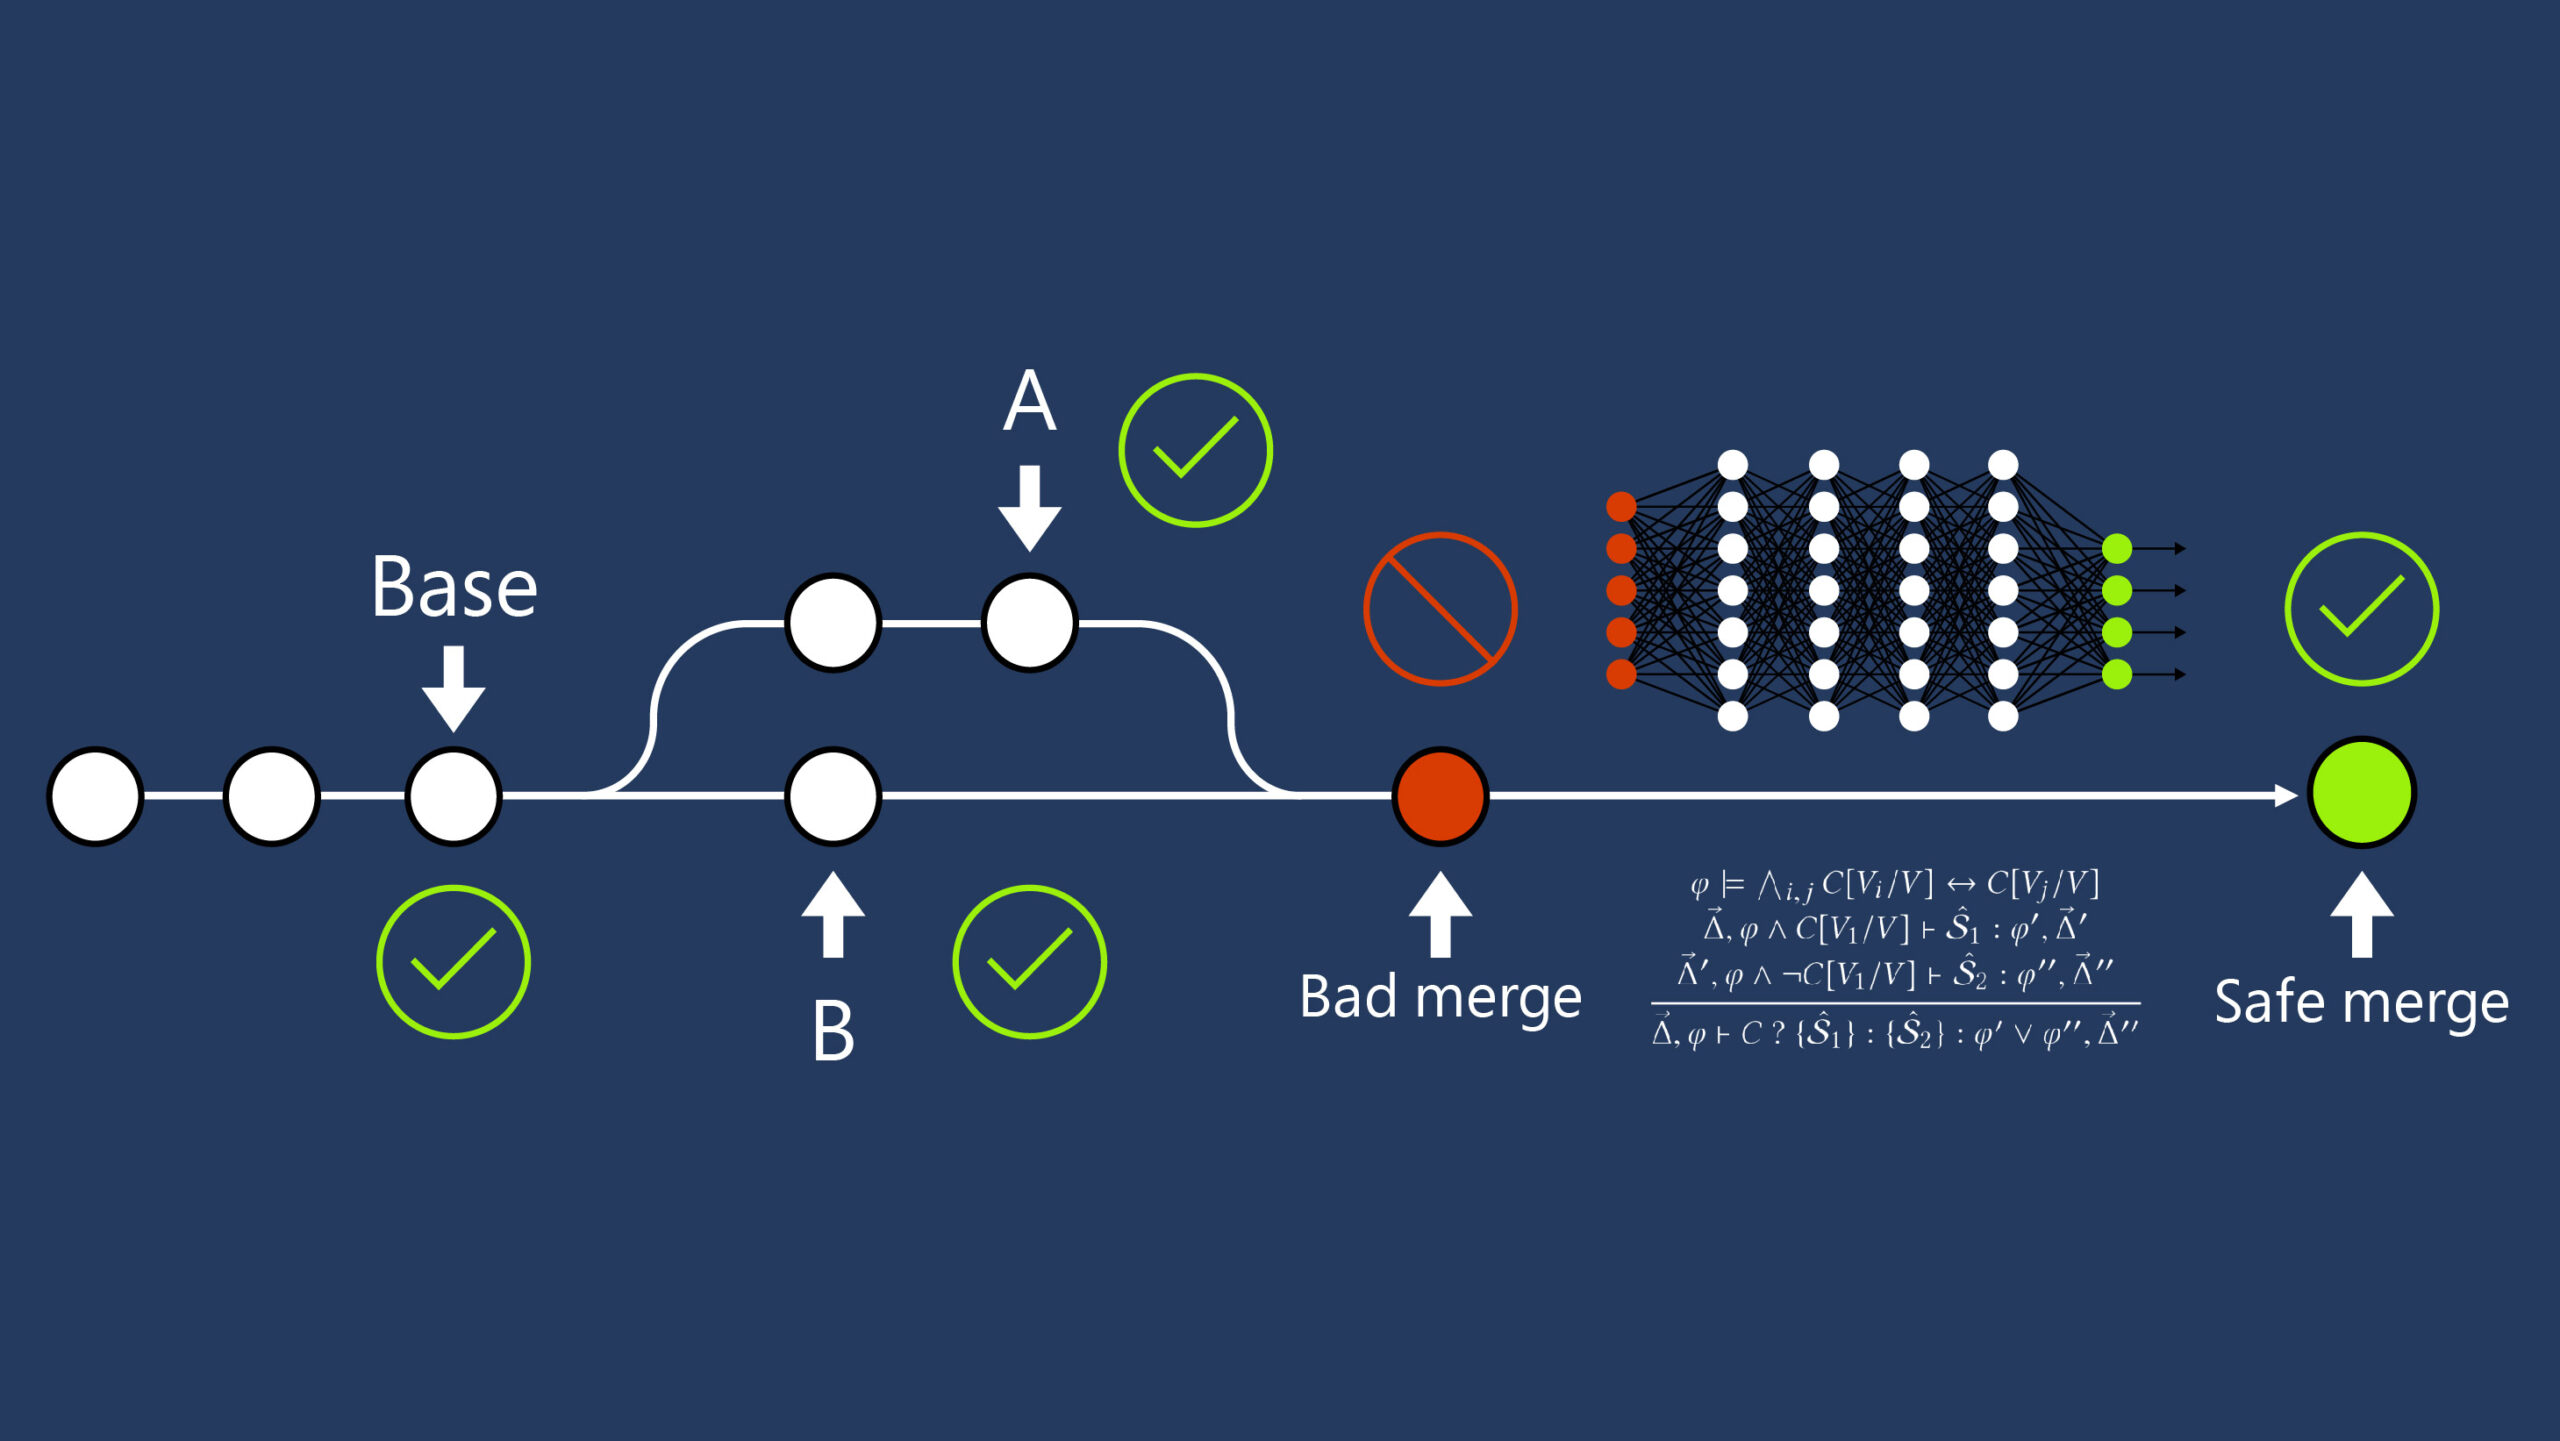 """An illustration ofresolvinga bad mergeinto a safe merge.Moving from left to right,circleson a continuous linerepresent code commitsin a version control system. A circle labeled """"Base""""is the most common ancestor ofthecommits marked A and B,respectively.All three commitspassthe project'squality gates,denoted by green check marksalongside each of these commits. The subsequent merge results in afailure ofsome quality gate, denoted by ablue circle labeled """"Bad merge"""" with aredx above it. The repair uses machine learning,denoted byanabstractimage of aneural network,and program verificationand synthesis, denoted by aformal inference rule containing math symbols,to construct a safe merge that passes the quality gate,denoted by a circle outlinedin greenwitha green check markabove it."""